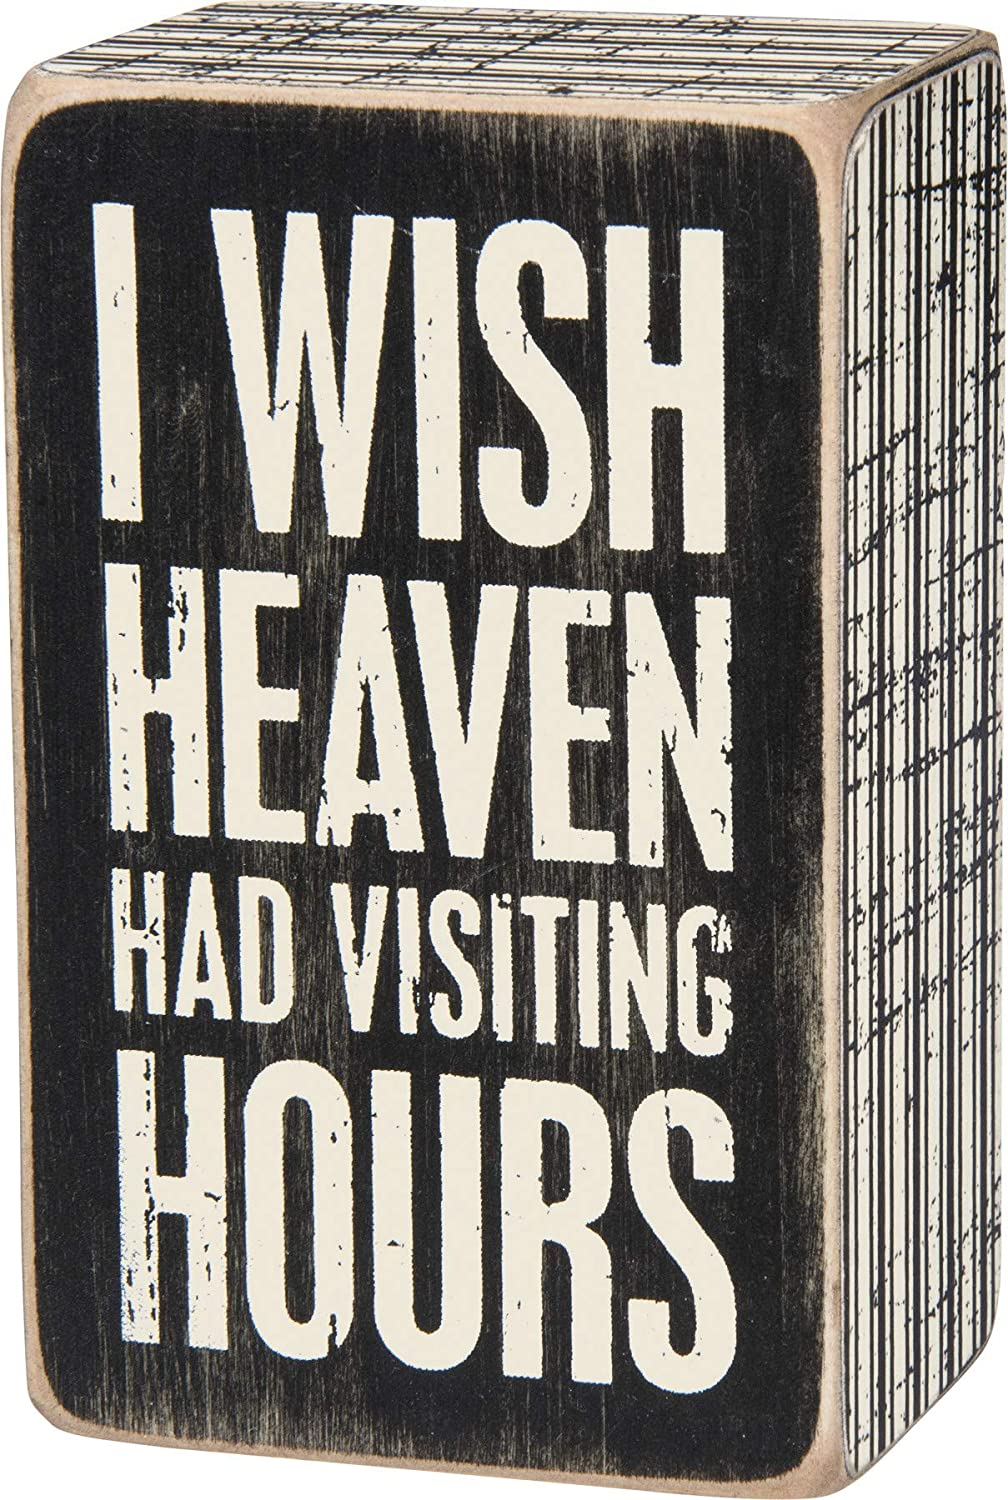 Primitives by Kathy 28462 Pinstripe Trimmed Box Sign, 2.5 x 4-Inches, Visiting Hours